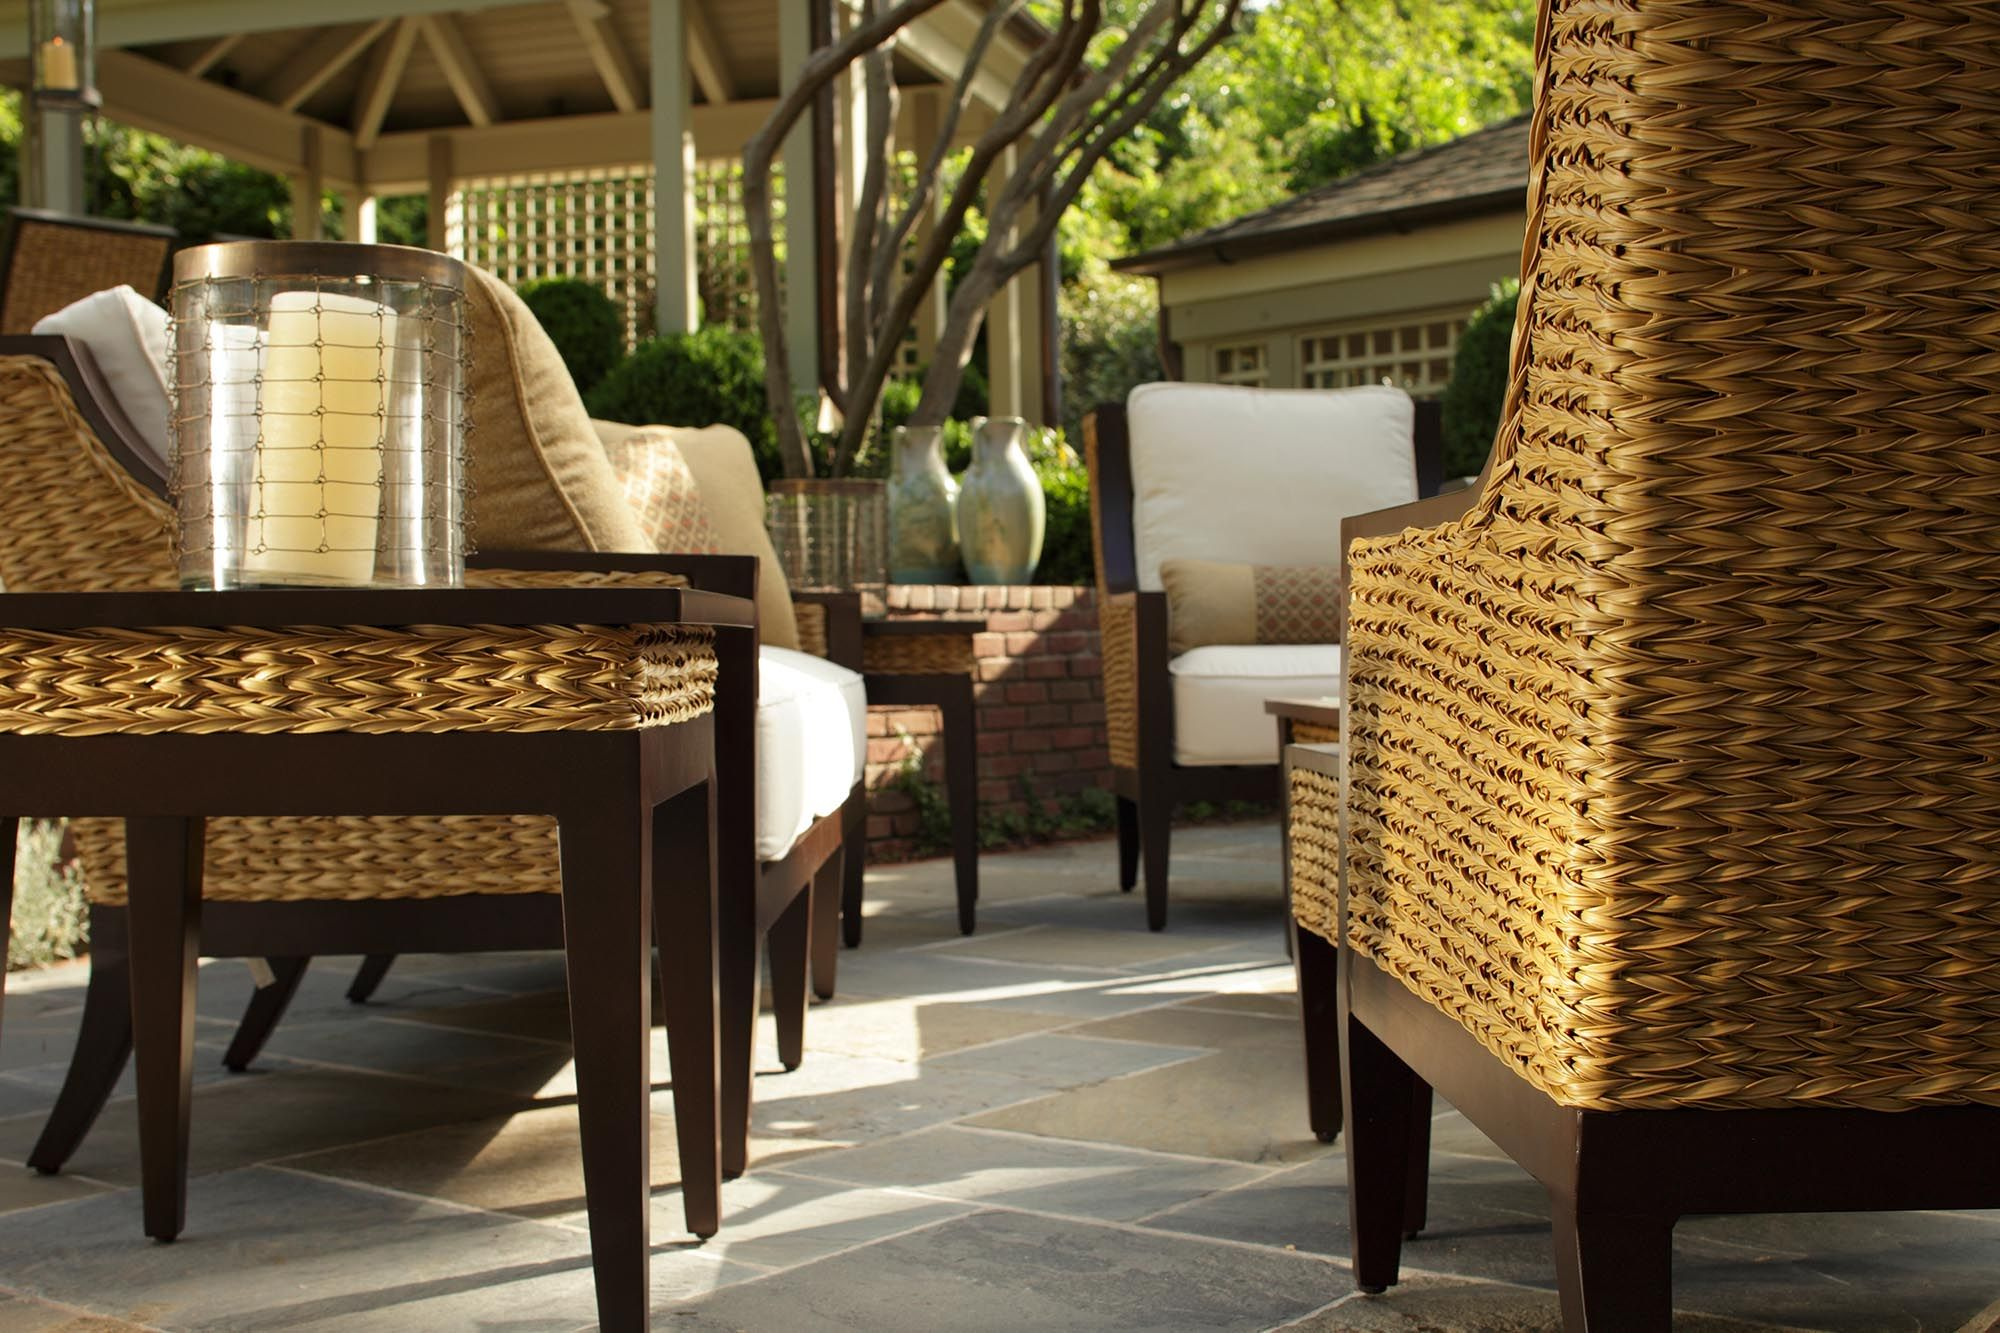 outdoor furniture by Summer Classics | SQ Ft. If Only... | Pinterest ...